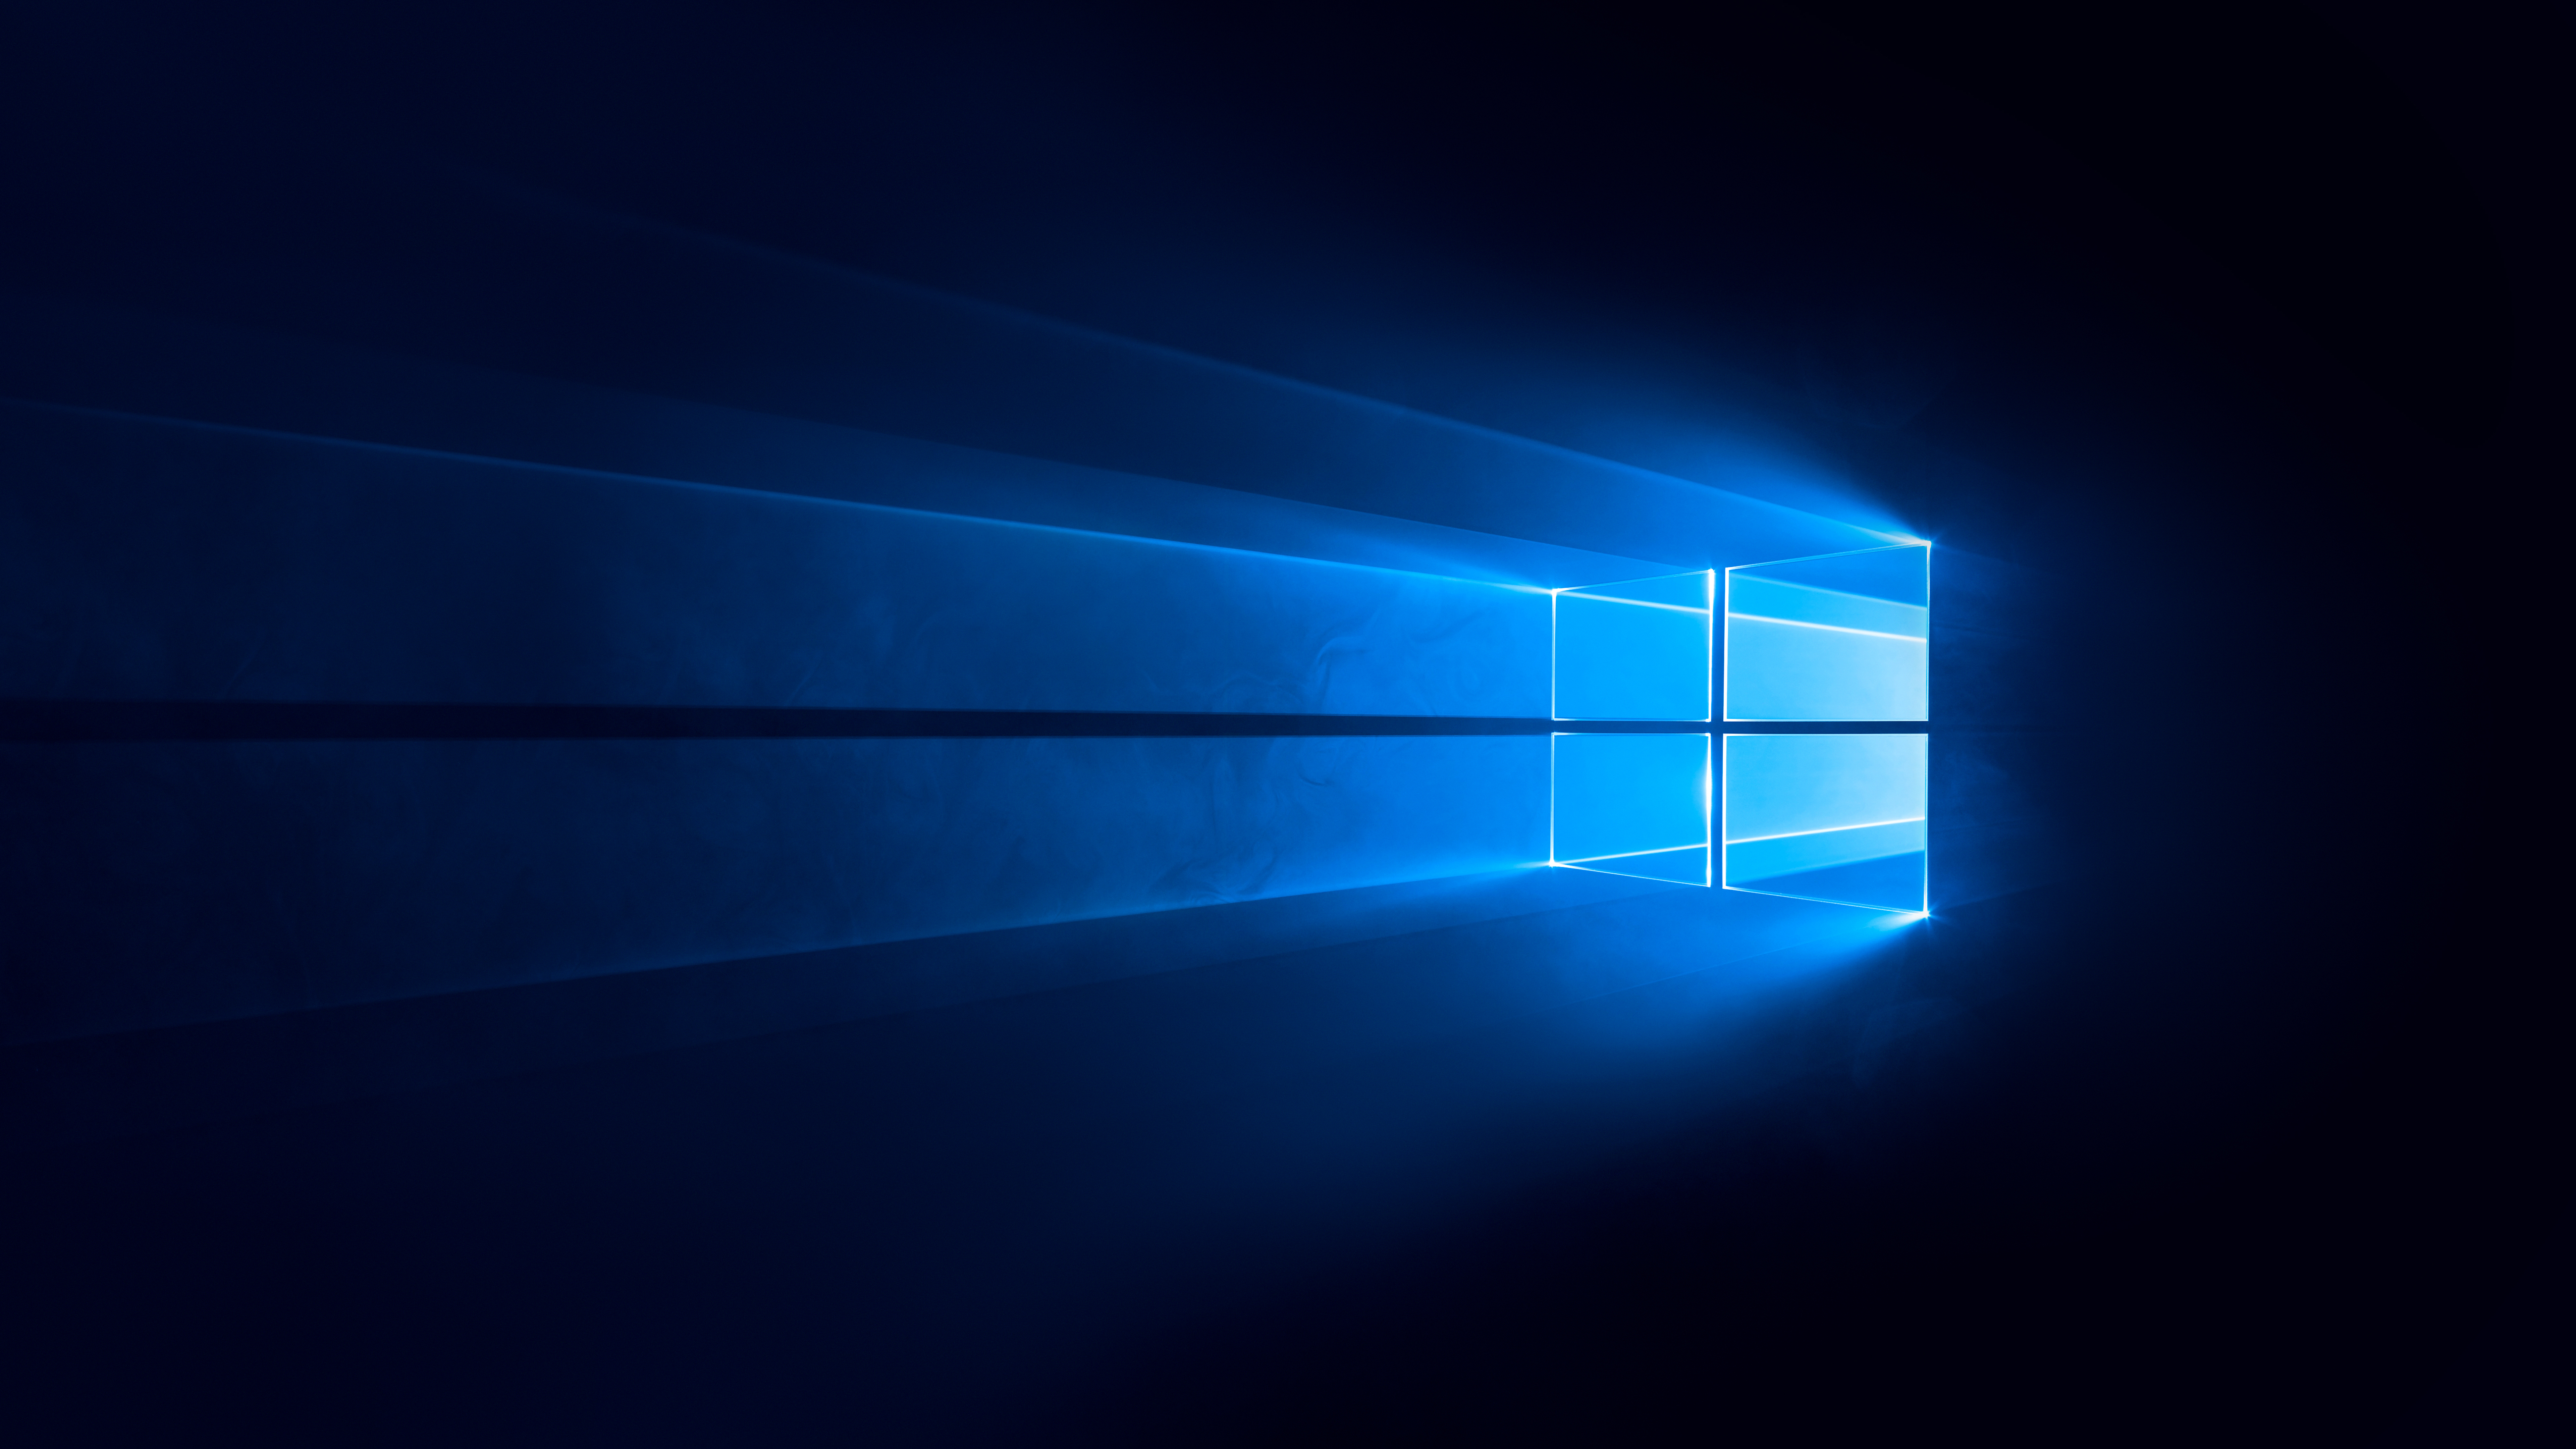 Windows 10 8k Ultra Hd Wallpaper Background Image 7680x4320 Id 1037699 Wallpaper Abyss